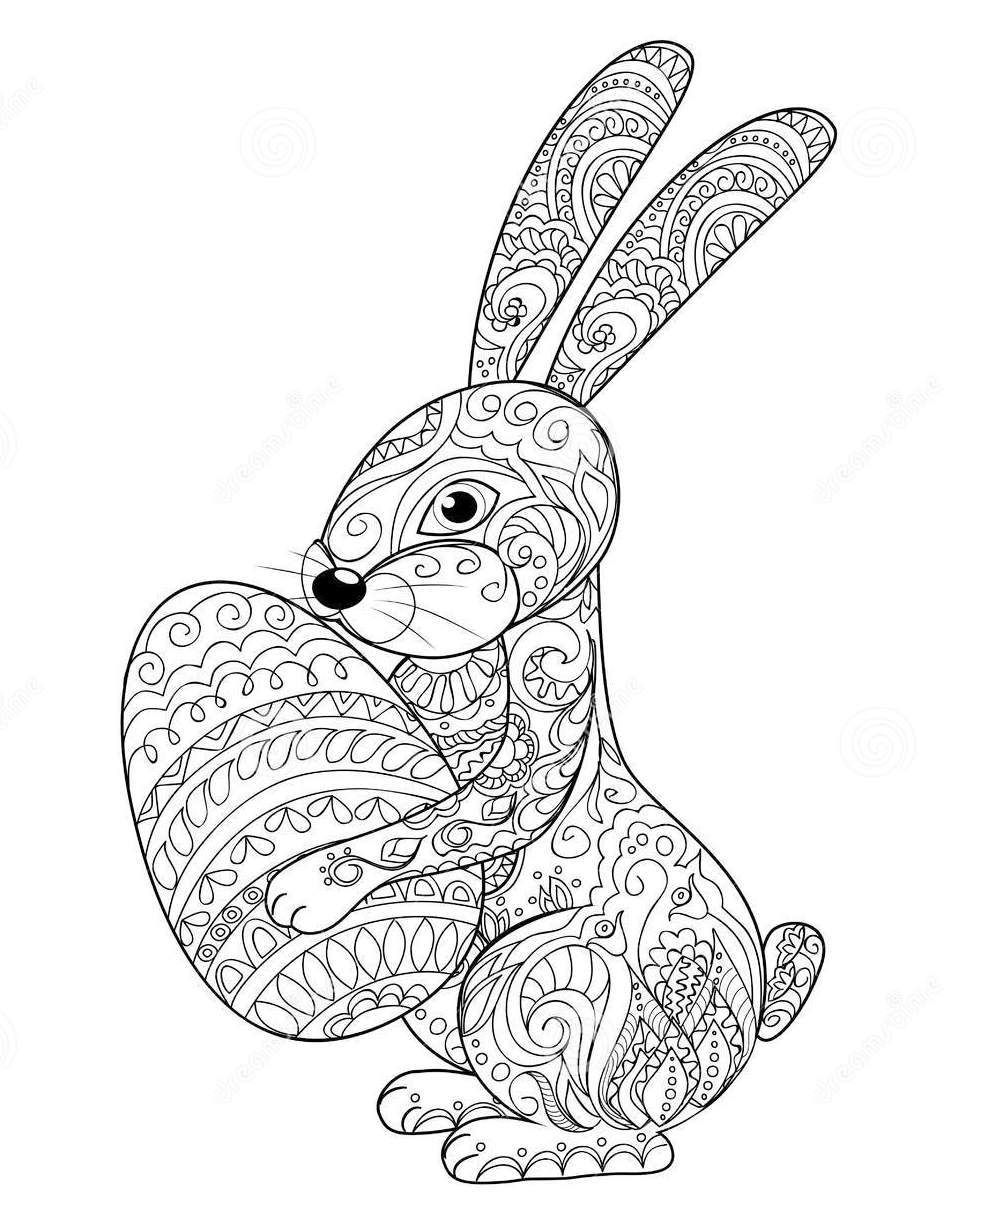 Zentangle Rabbit Easter Coloring Page Coloring Pages Easter Coloring Pages Mandala Coloring Pages